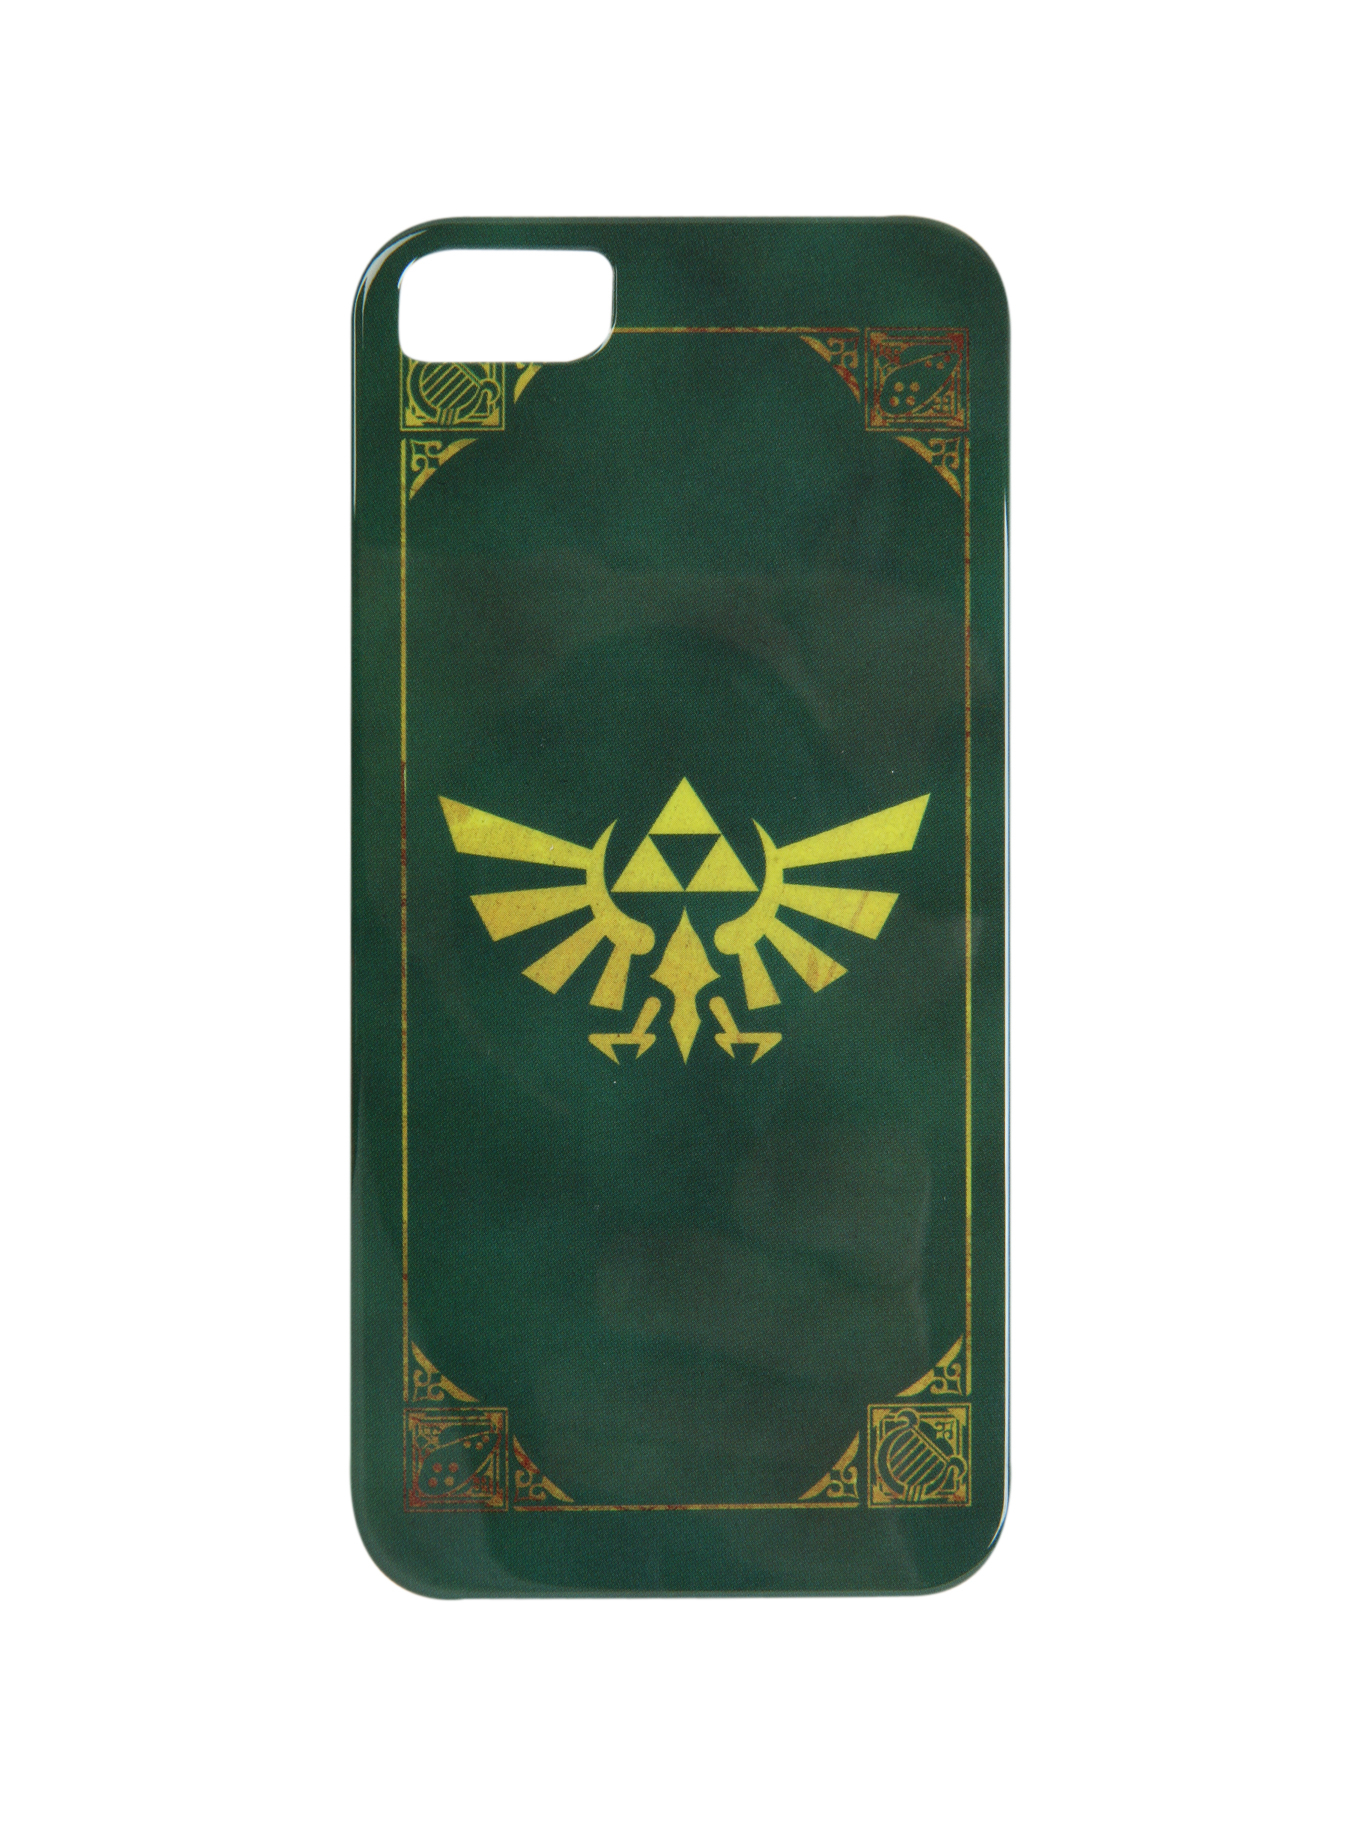 Nintendo The Legend Of Zelda Triforce iPhone 5/5S Case | Hot Topic